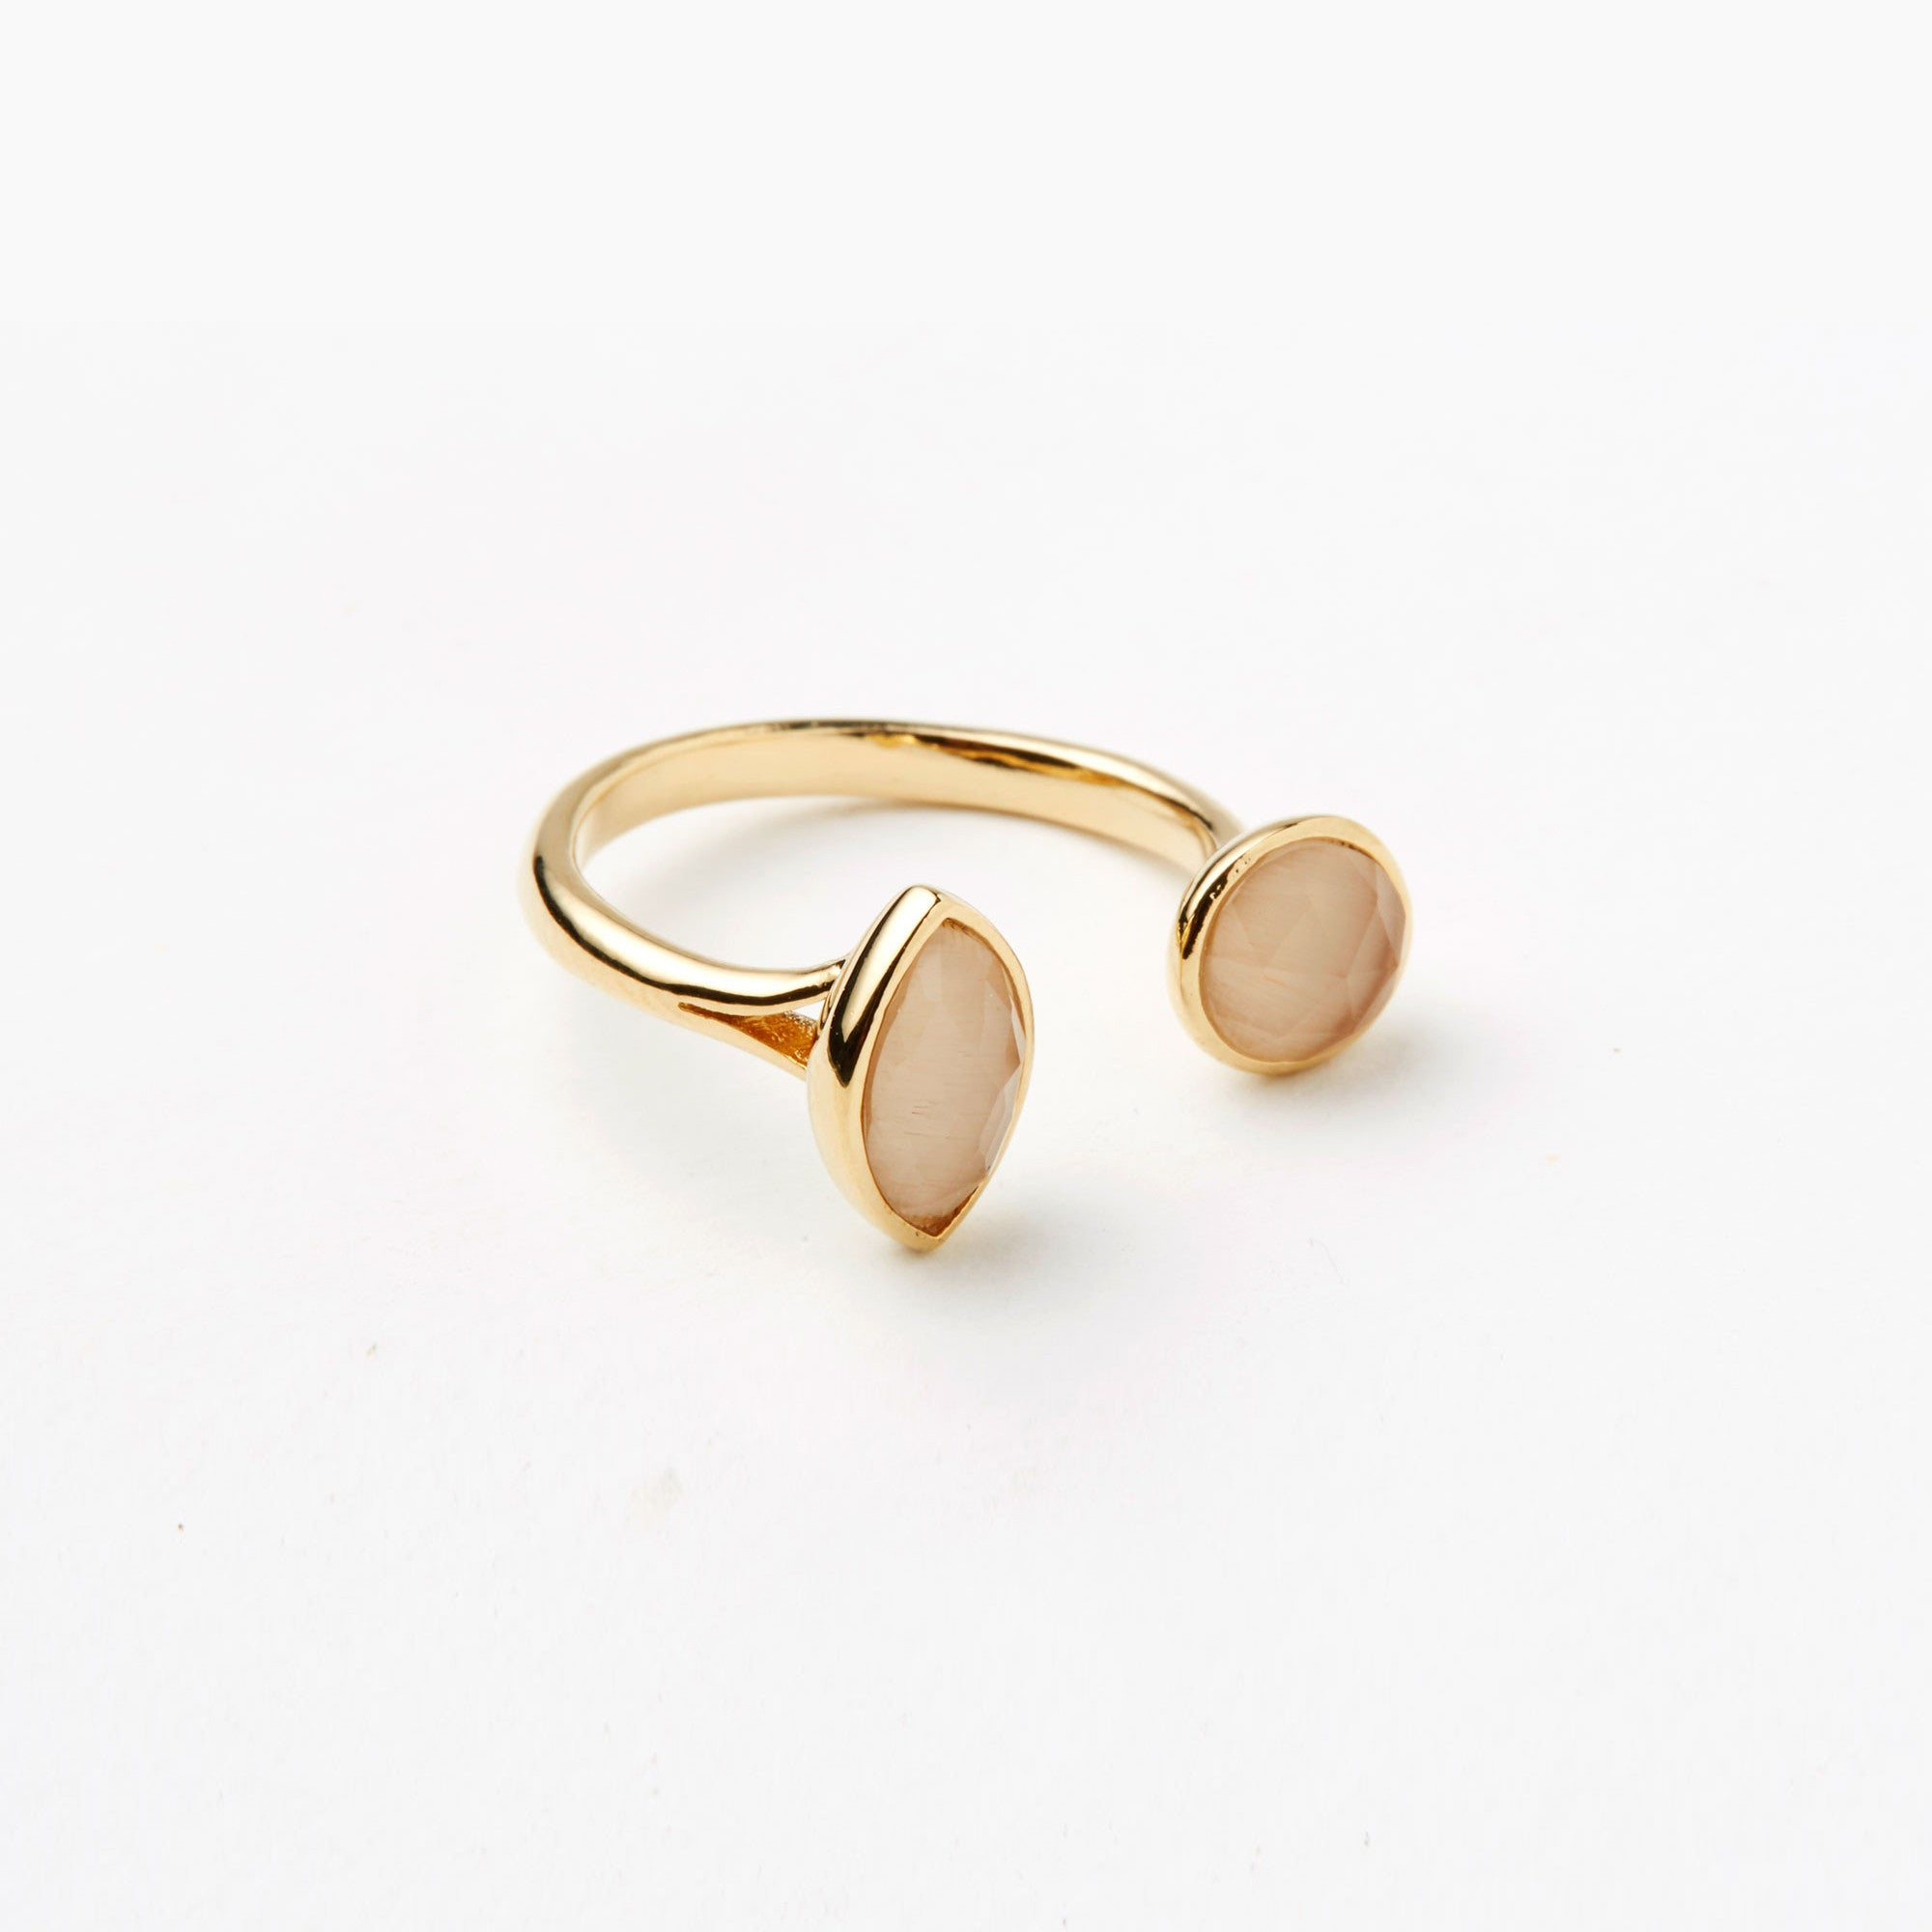 OPEN RING WITH CIRCLE AND TEARDROP